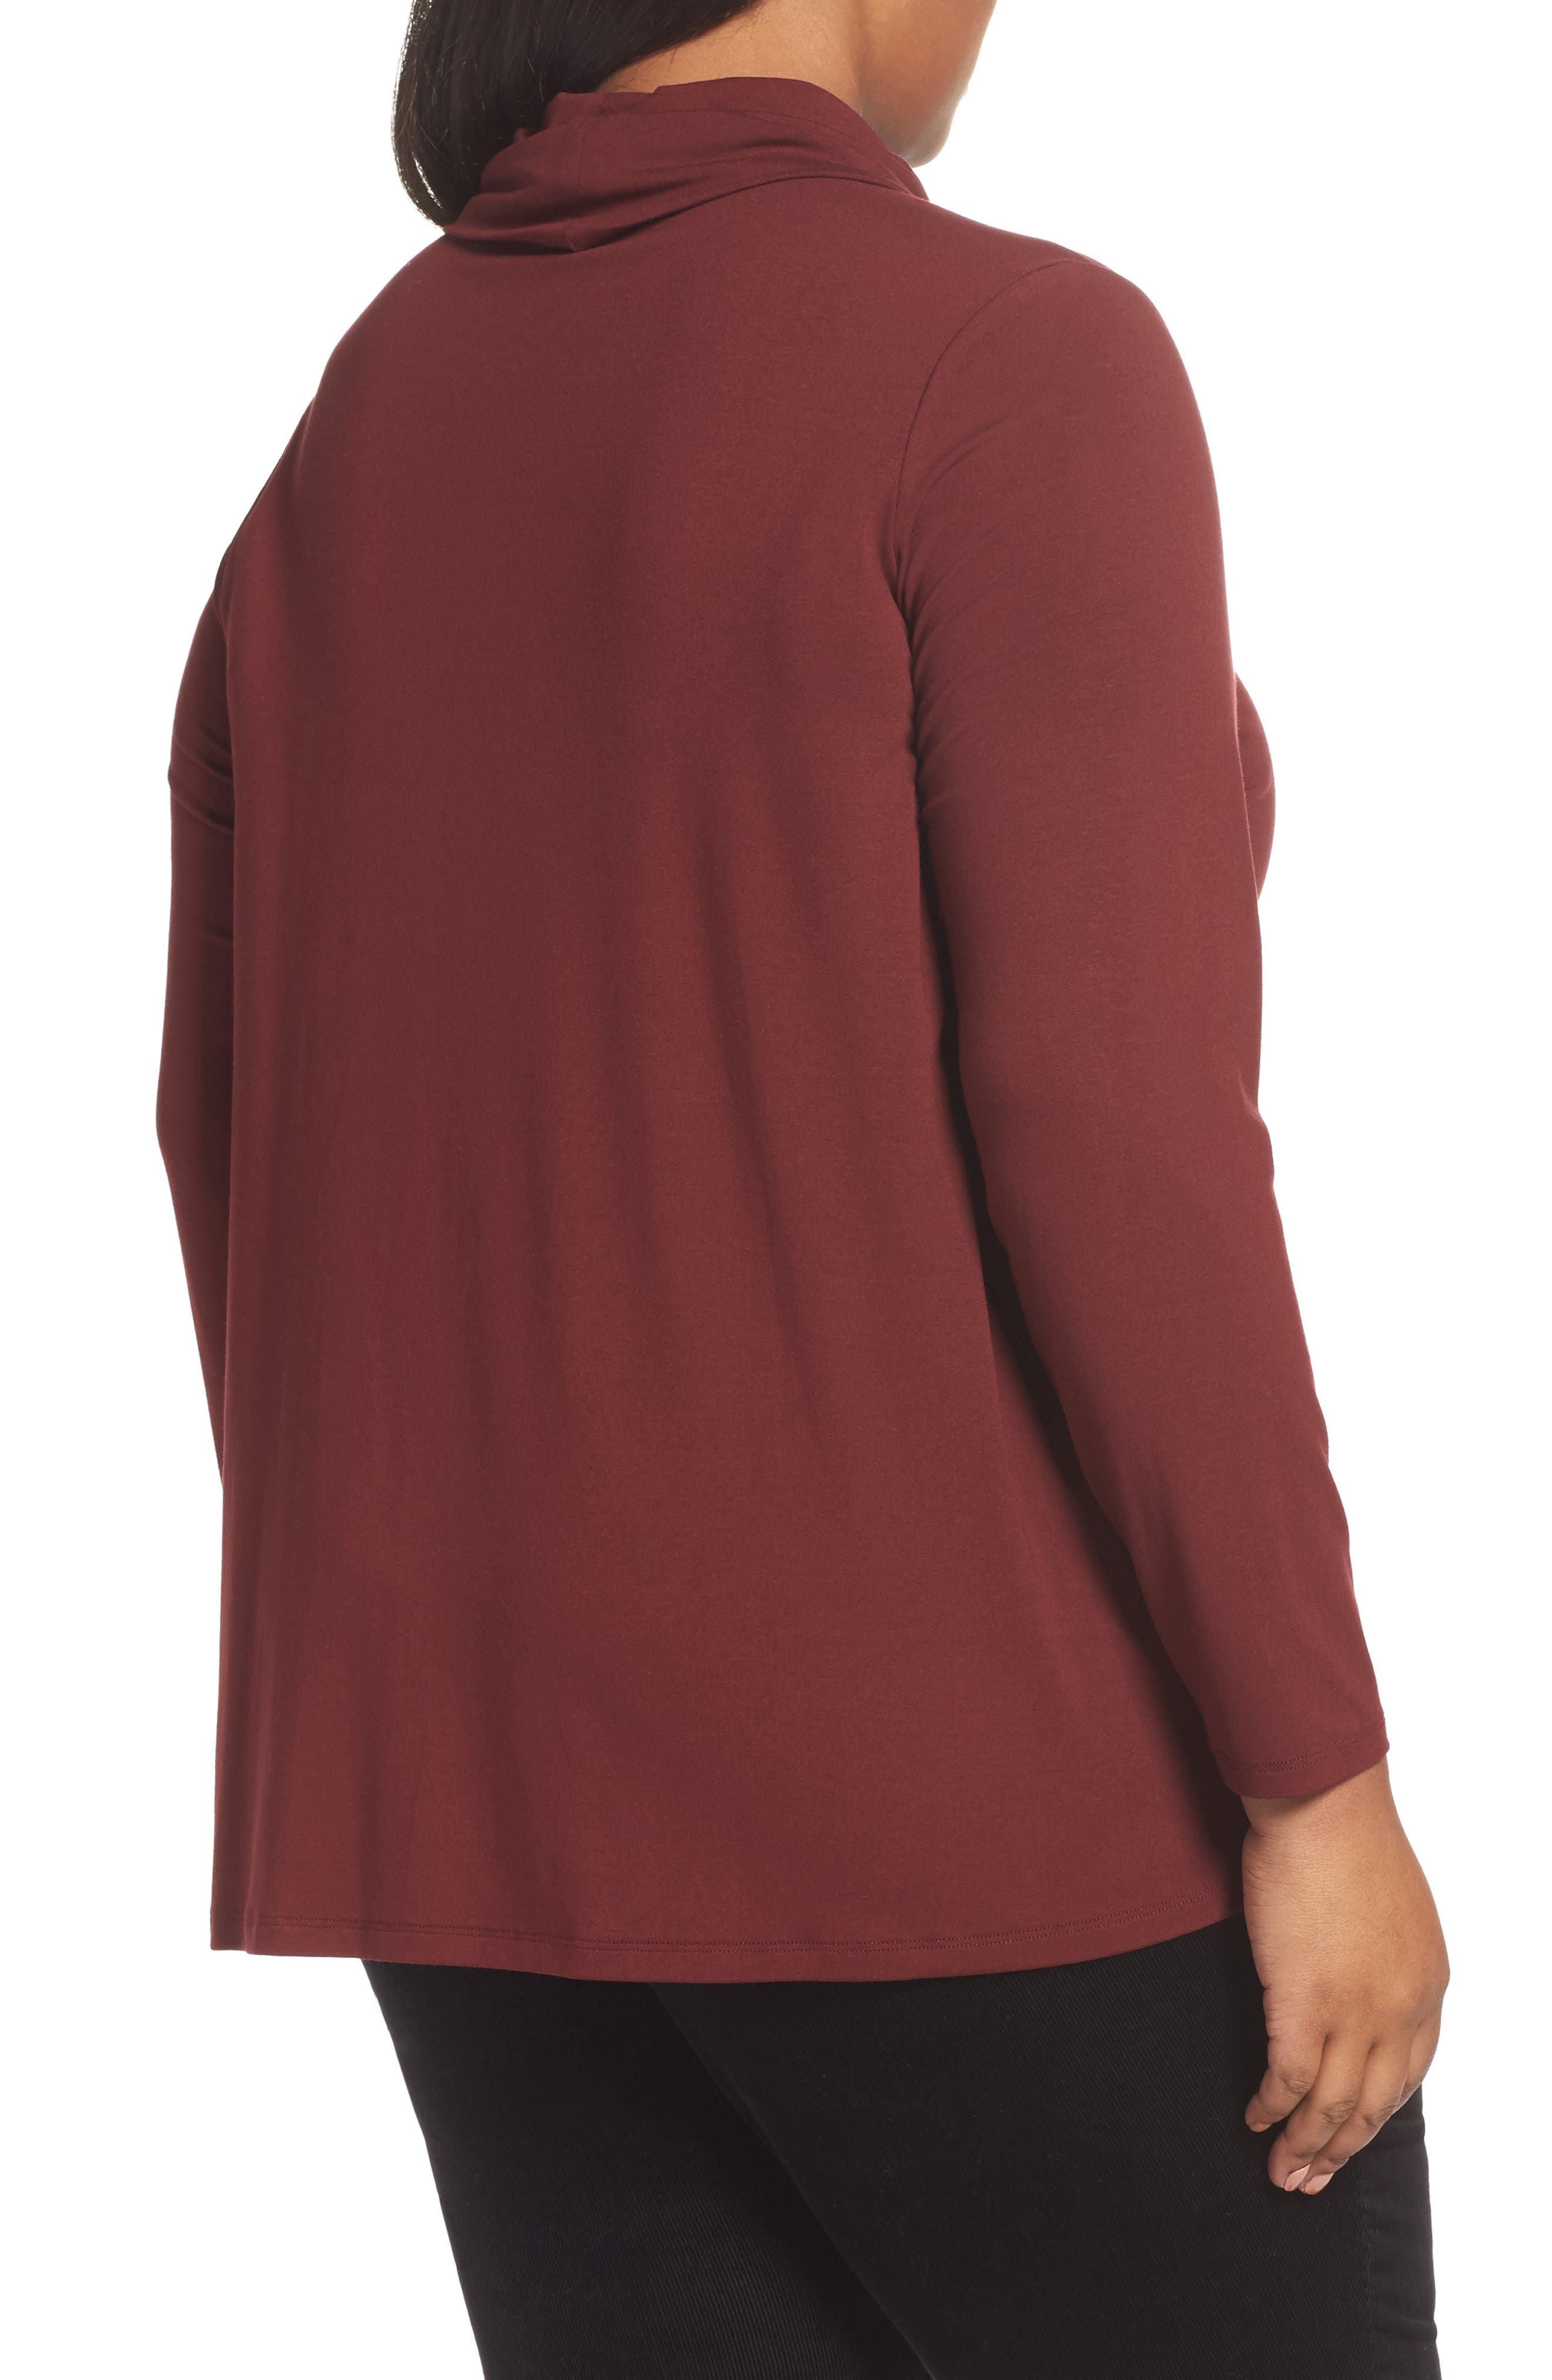 Alternate Image 2  - Eileen Fisher Turtleneck Jersey Top (Plus Size)